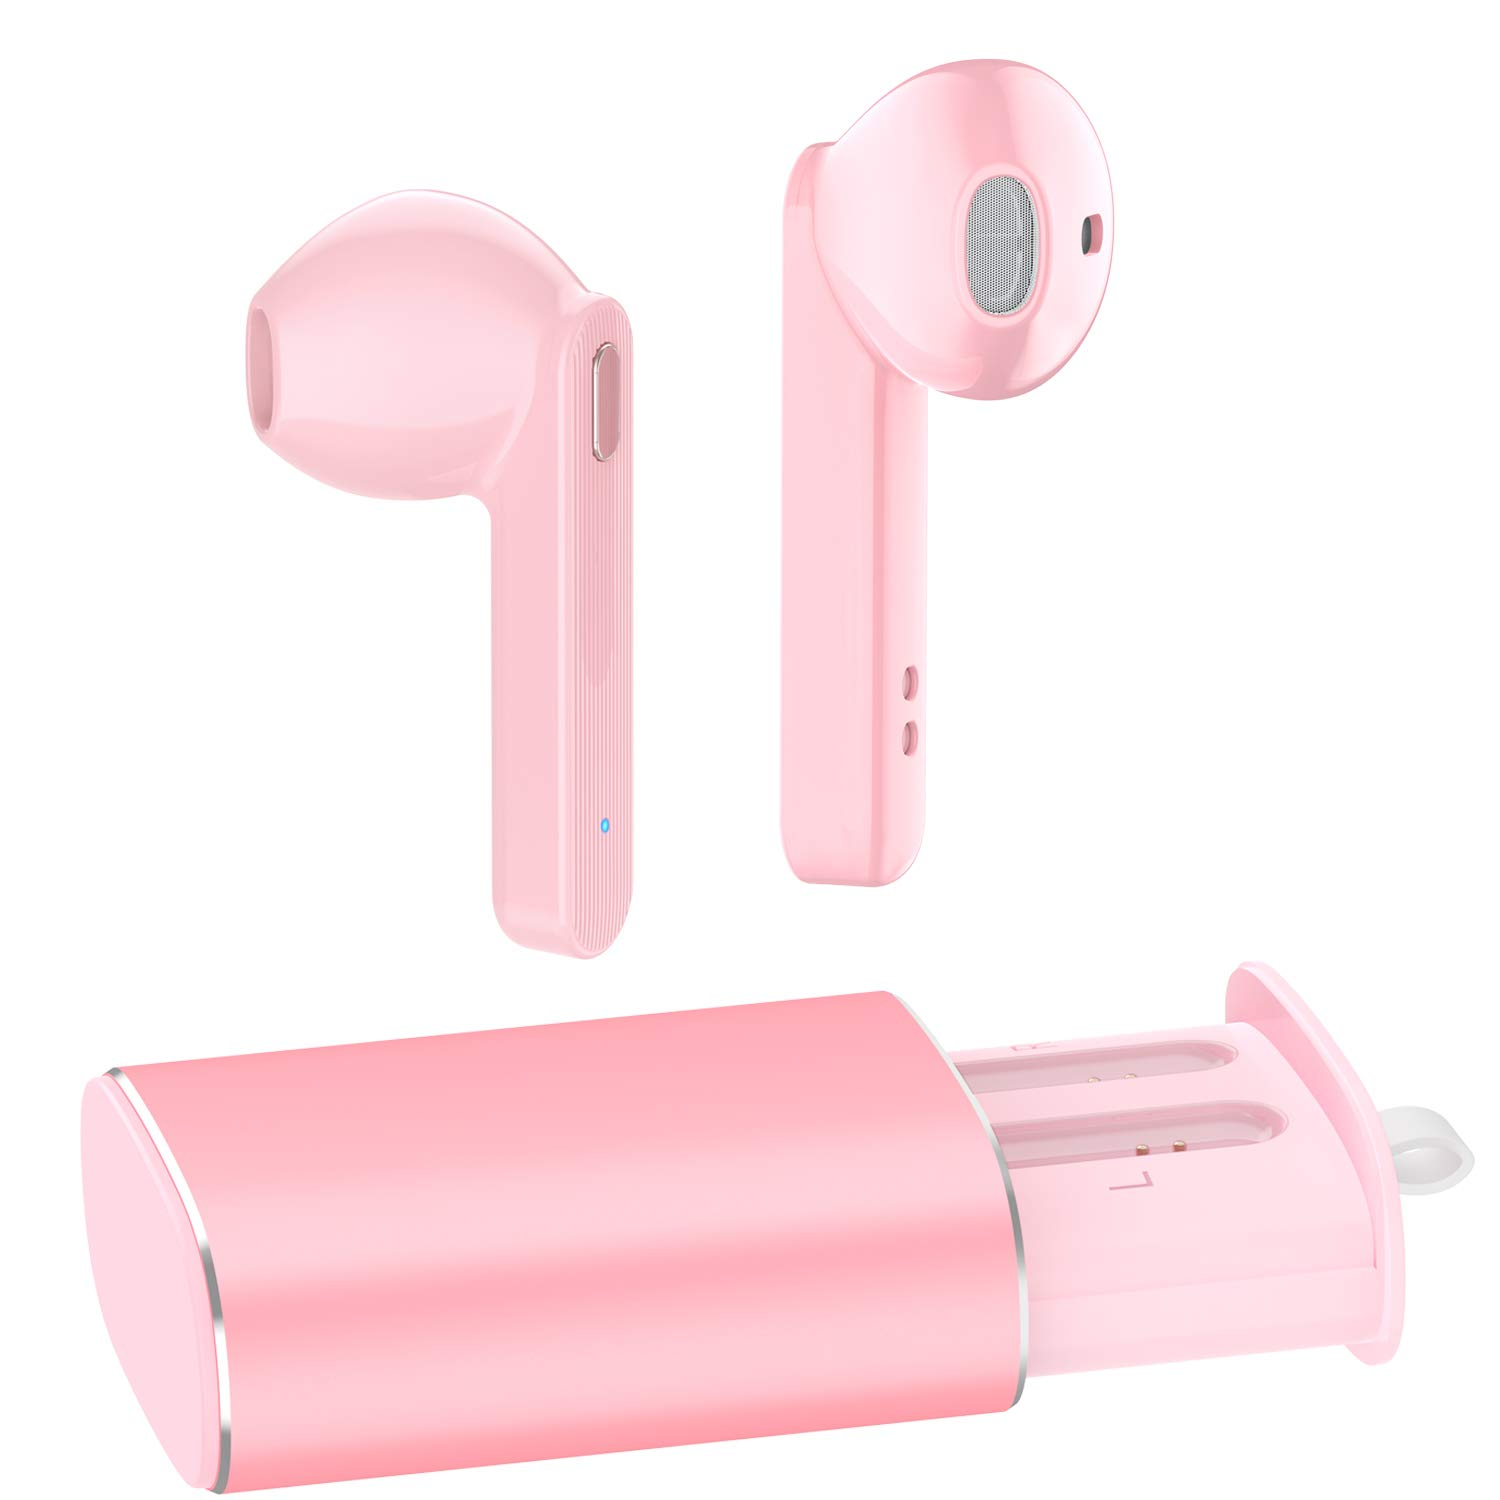 True Wireless Earbuds, AUGYMER Bluetooth 5.0 Earphones Auto Pairing Bluetooth Headphones TWS Stereo HiFi Headphones for Running Sports in-Ear with Type-C Charging Case Built in Mic Headset Pink